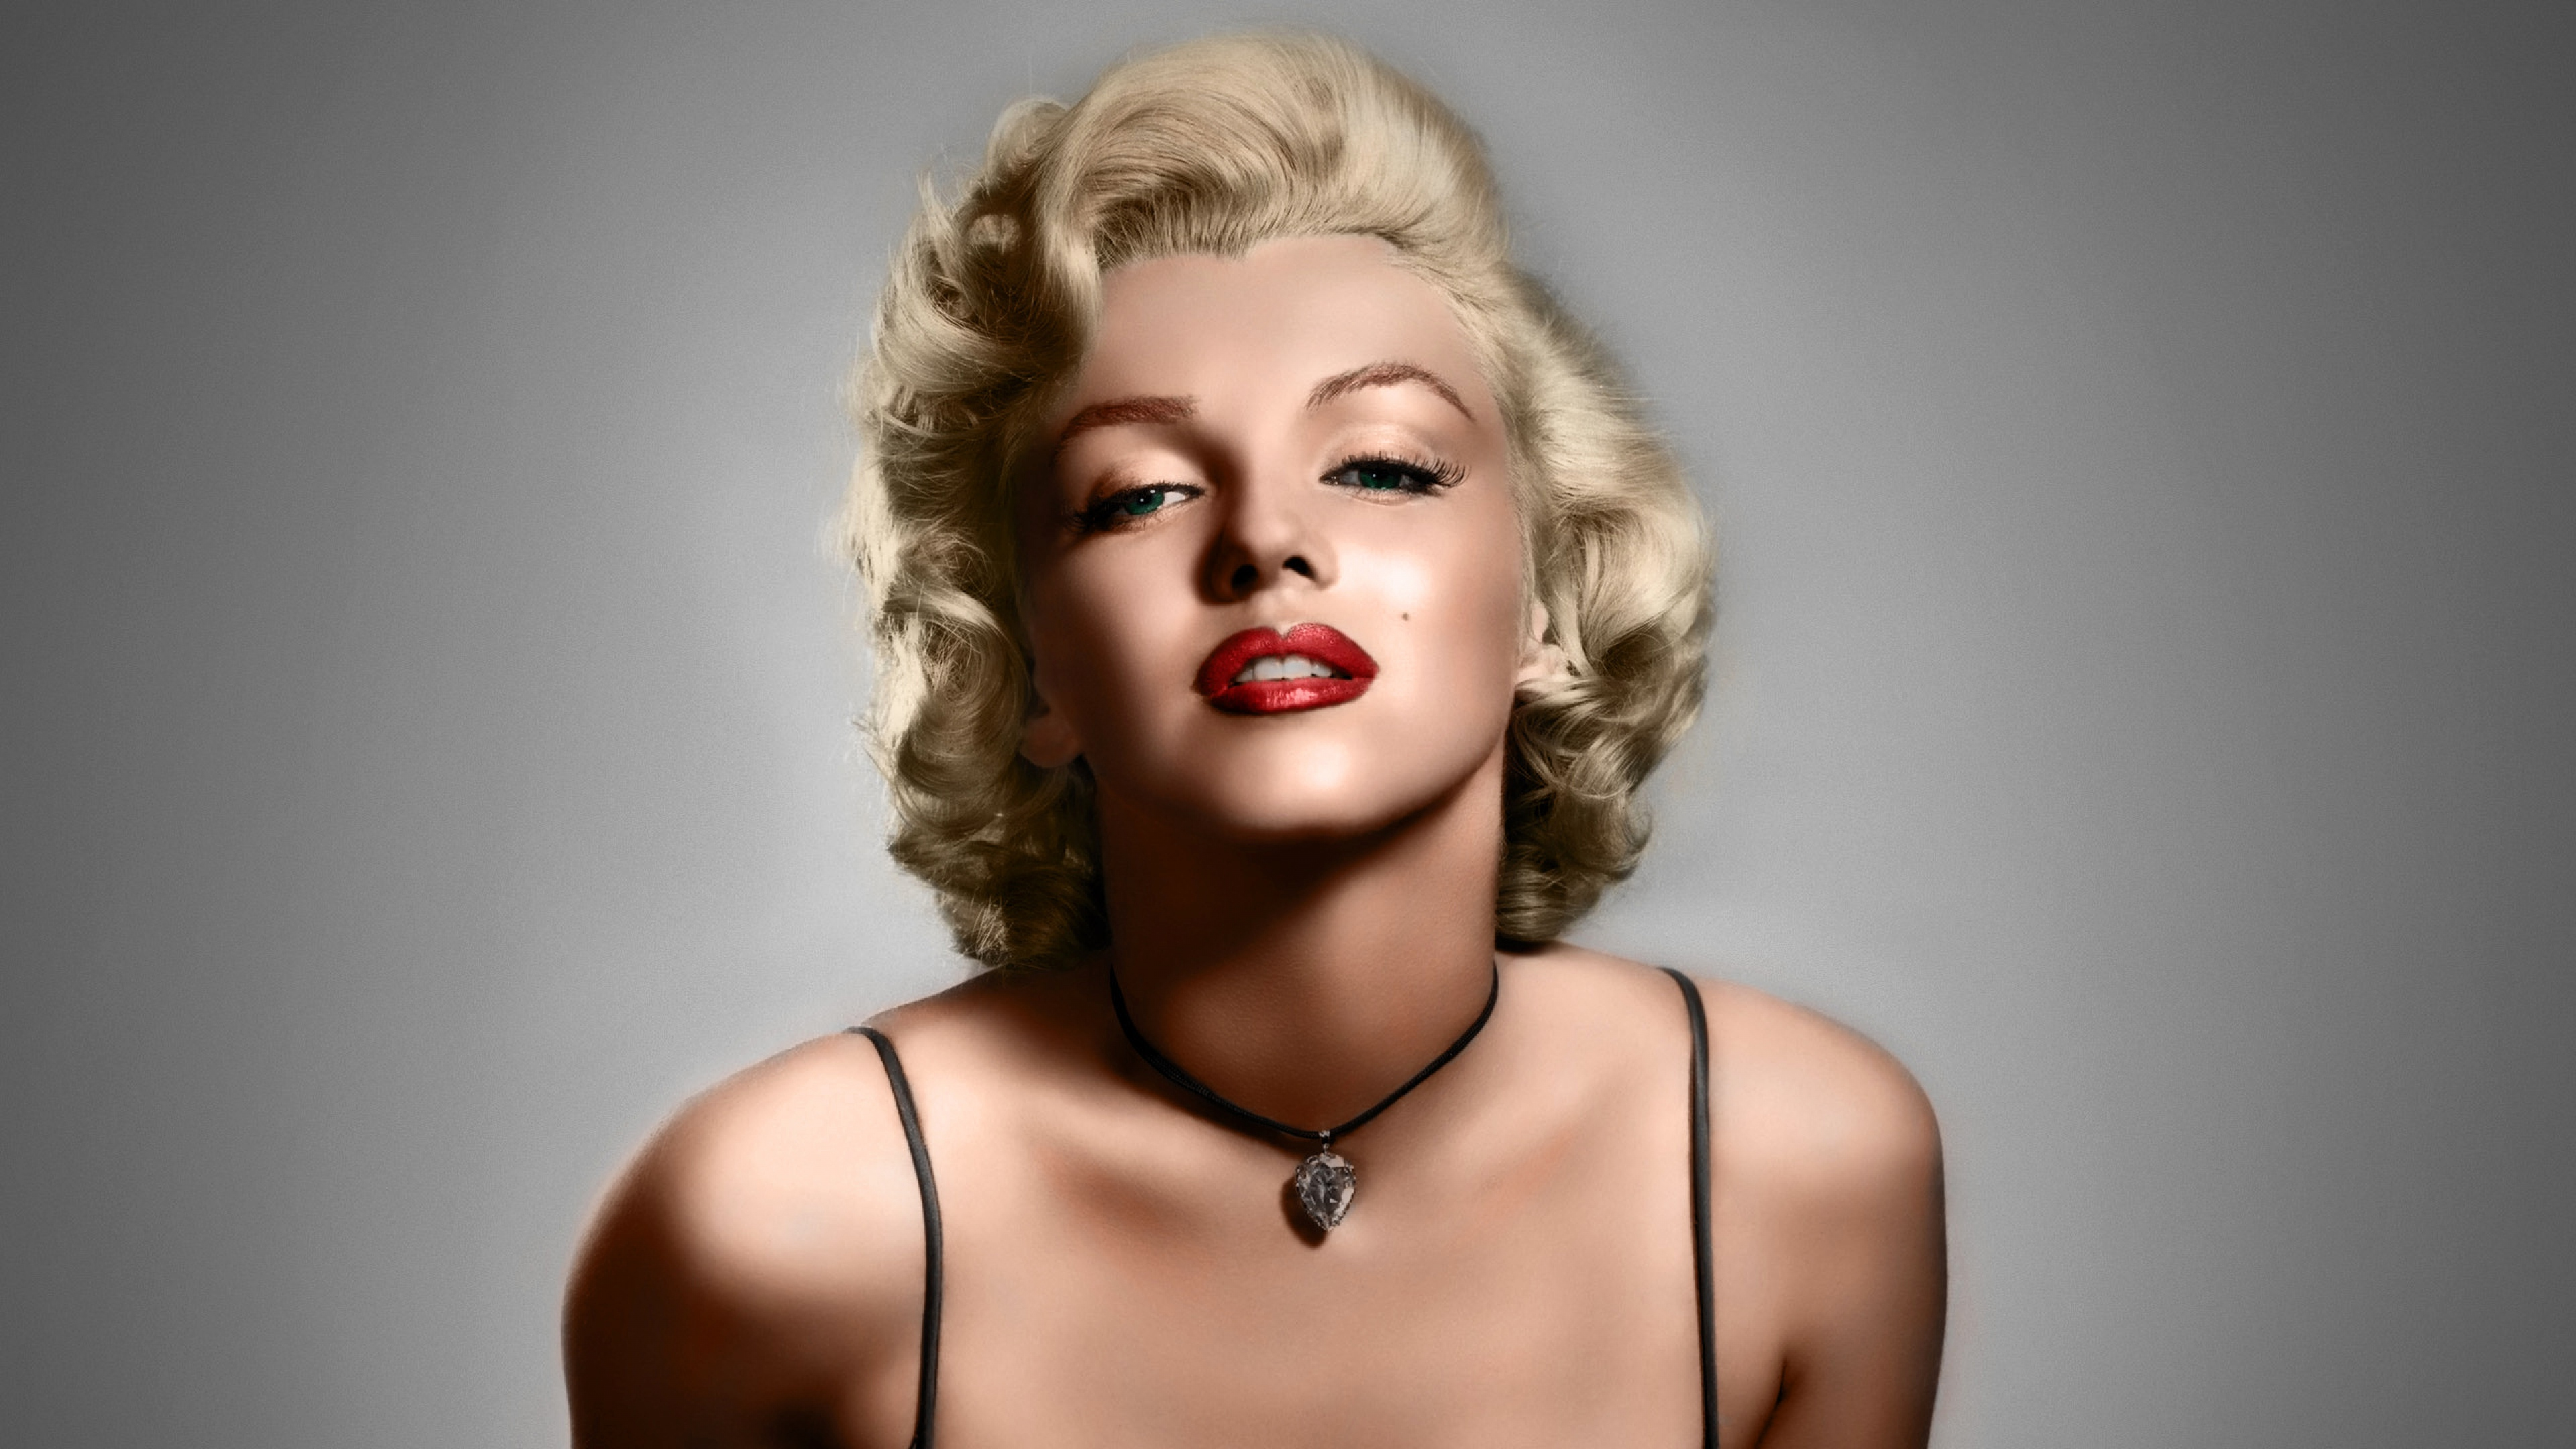 3840x2160 Wallpaper norma jeane mortenson, marilyn monroe, actress, singer, blonde, eyes